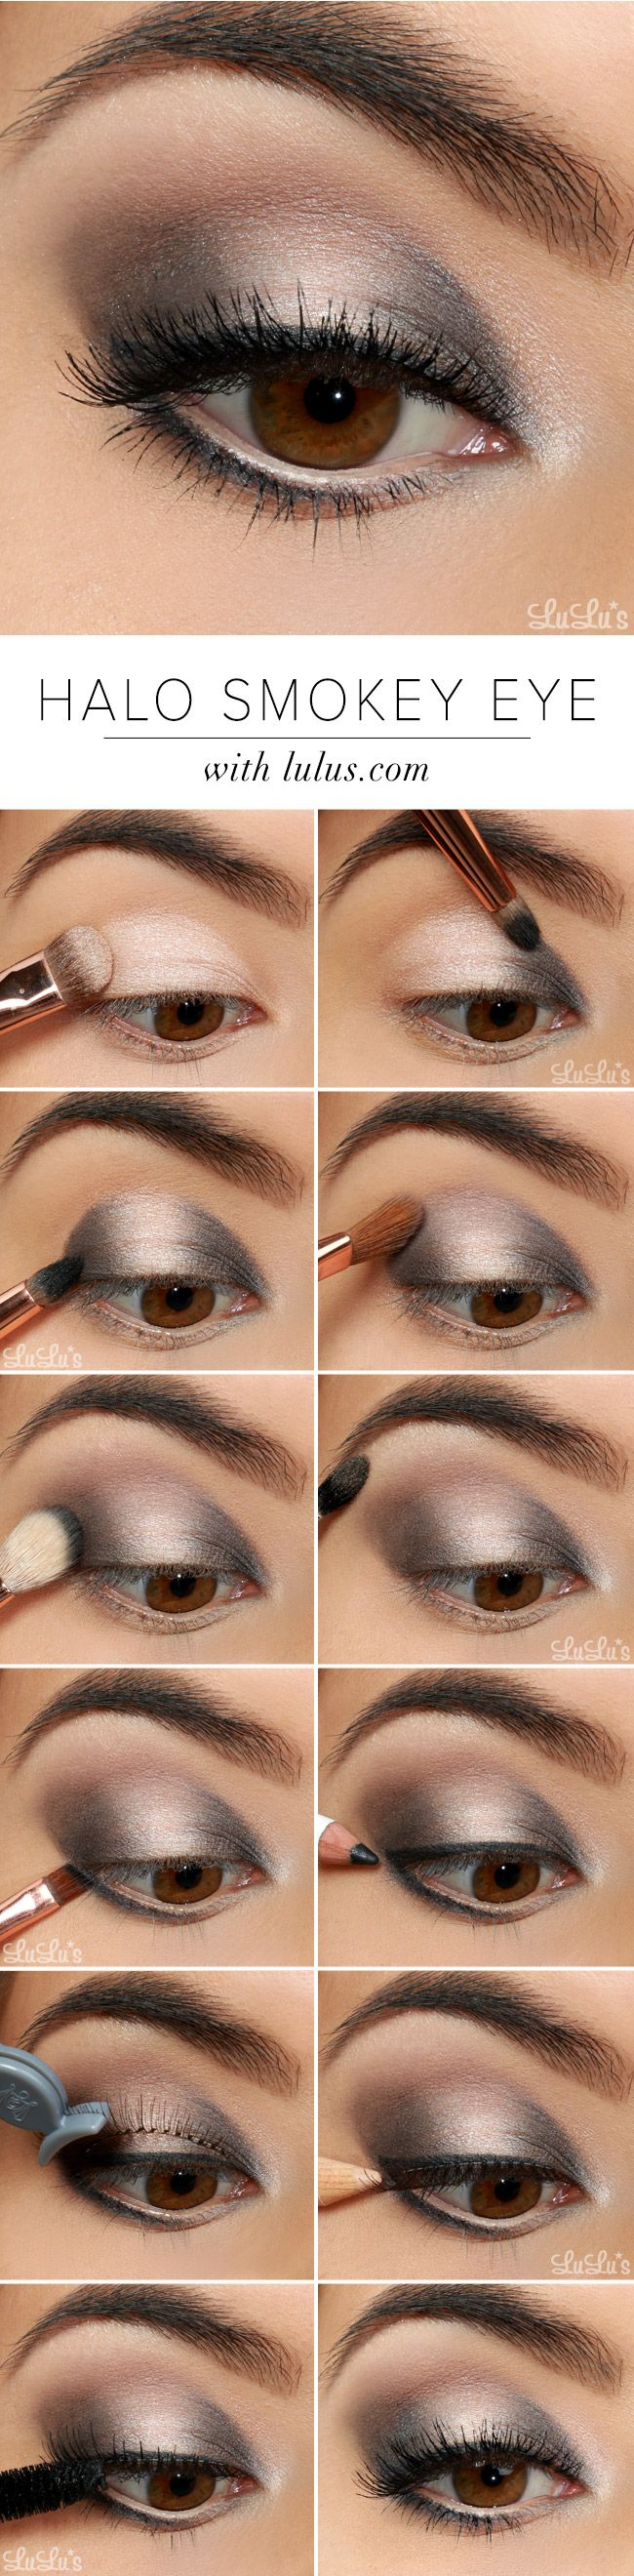 LuLu*s How-To: Halo Smokey Eye Shadow Tutorial at LuLus.com!